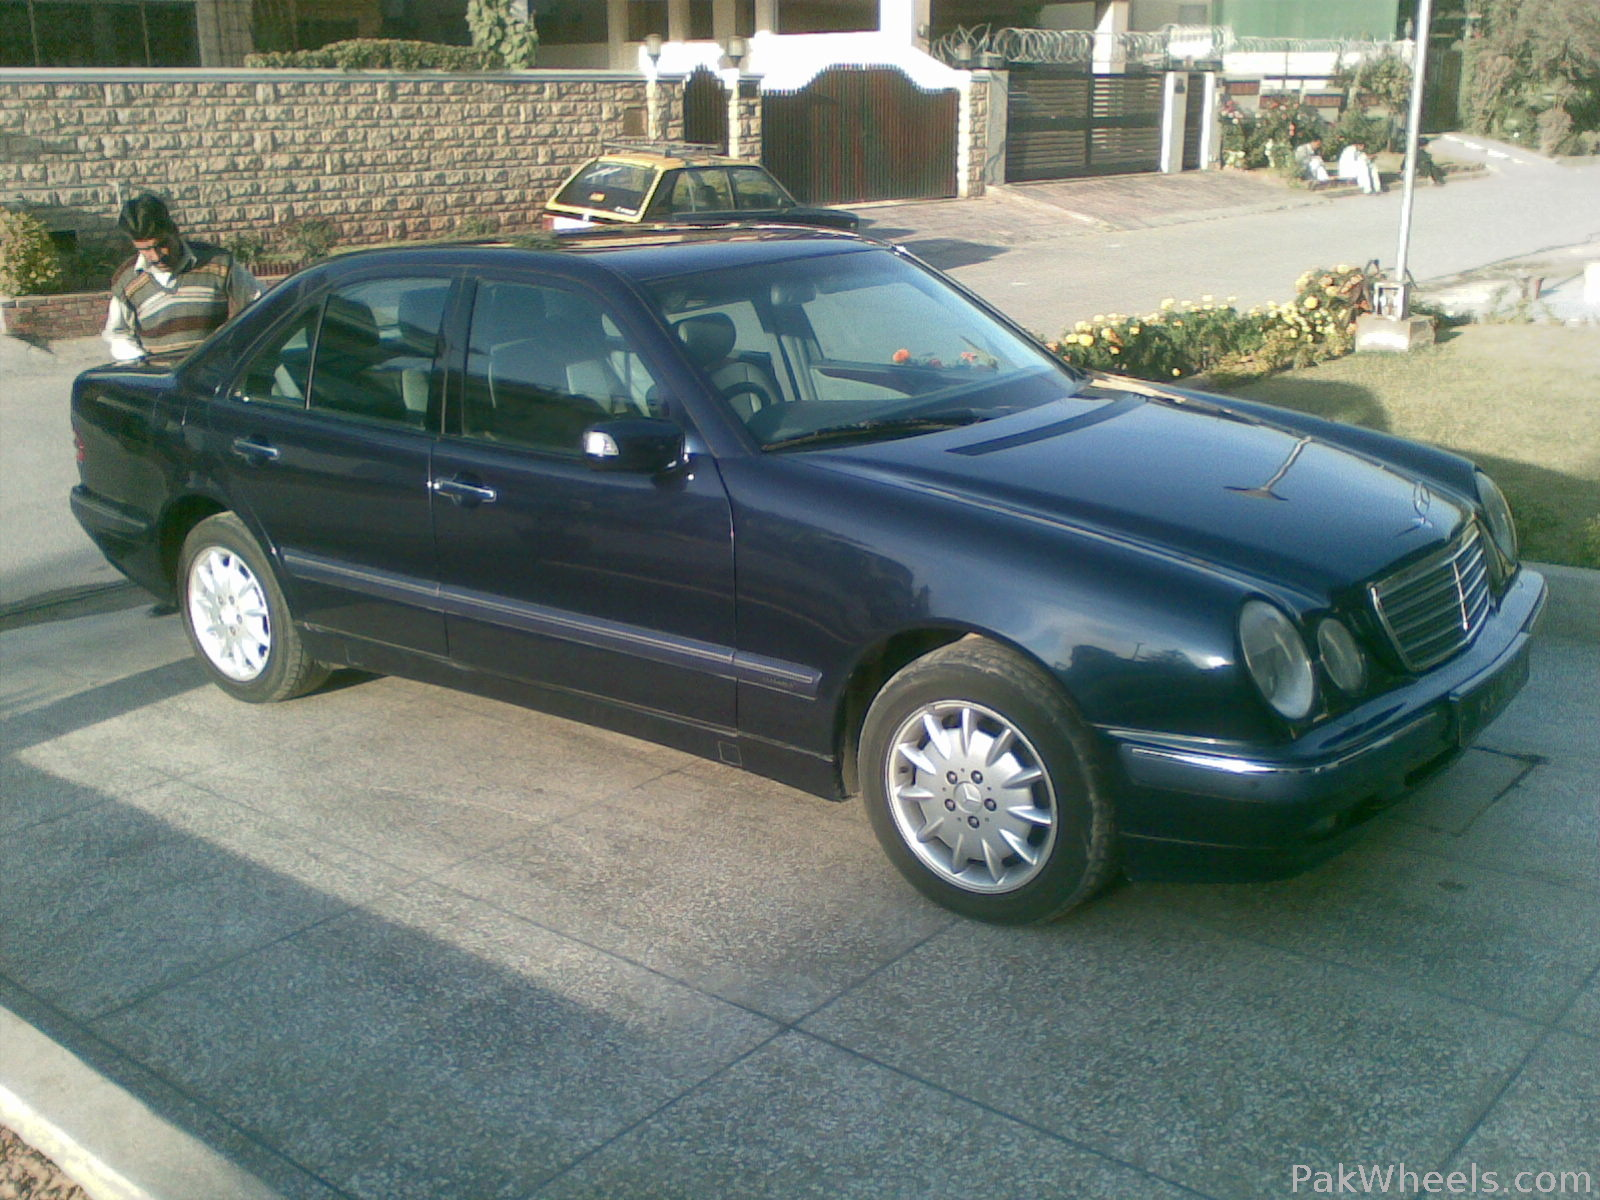 Mercedes benz e class 2000 of khanandilari member ride for 2000 mercedes benz e class e320